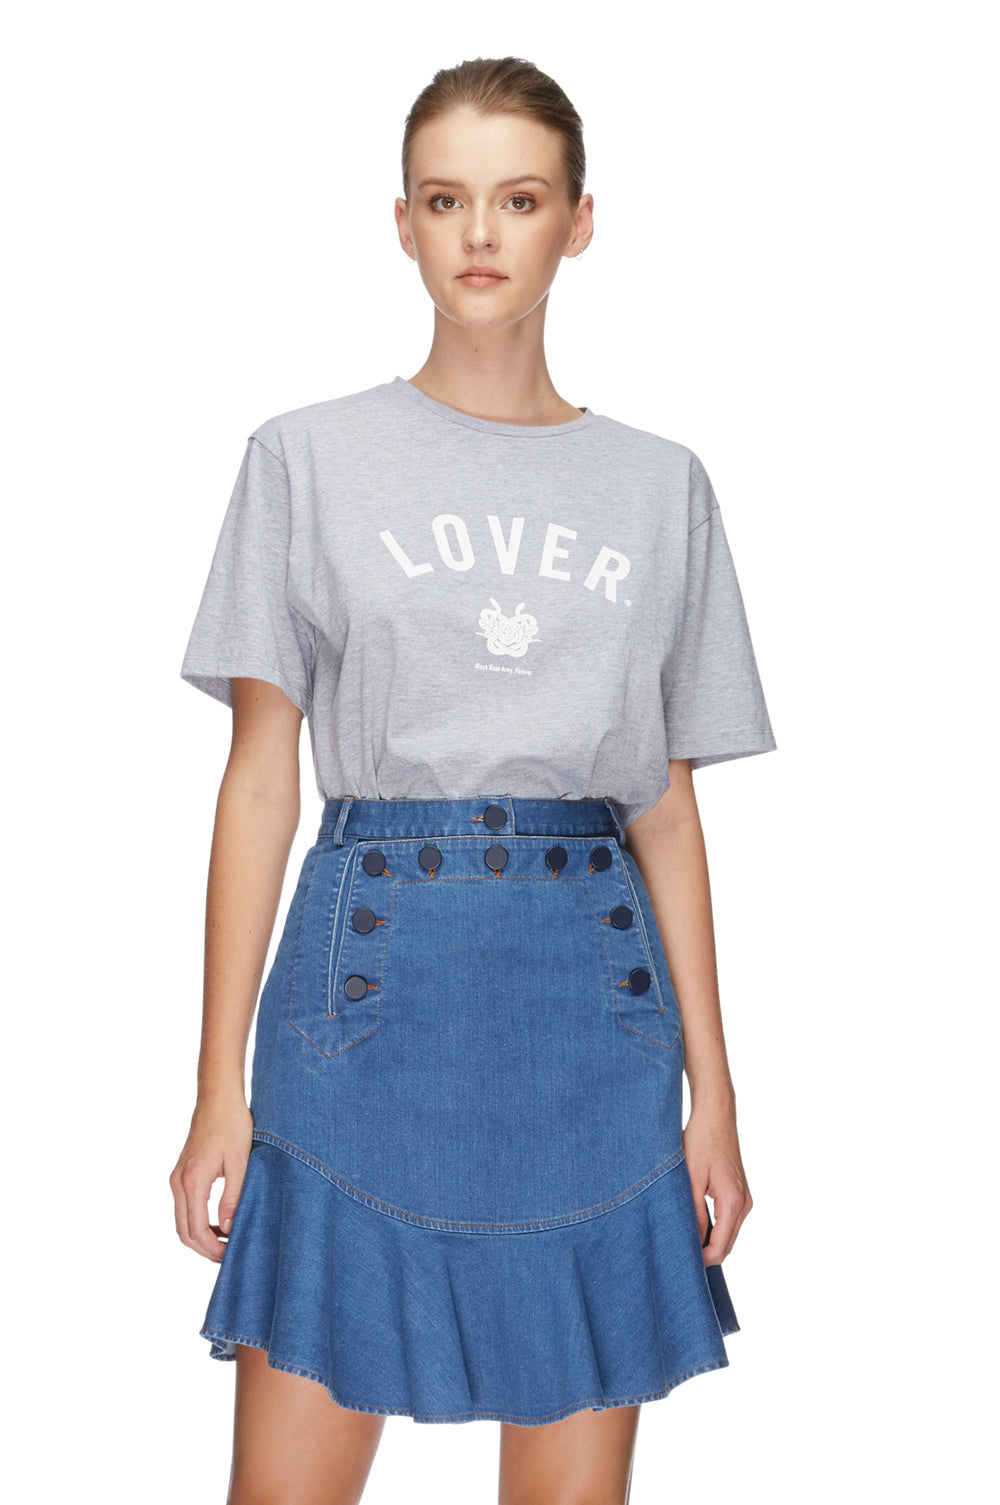 Lover College Tee Grey 5